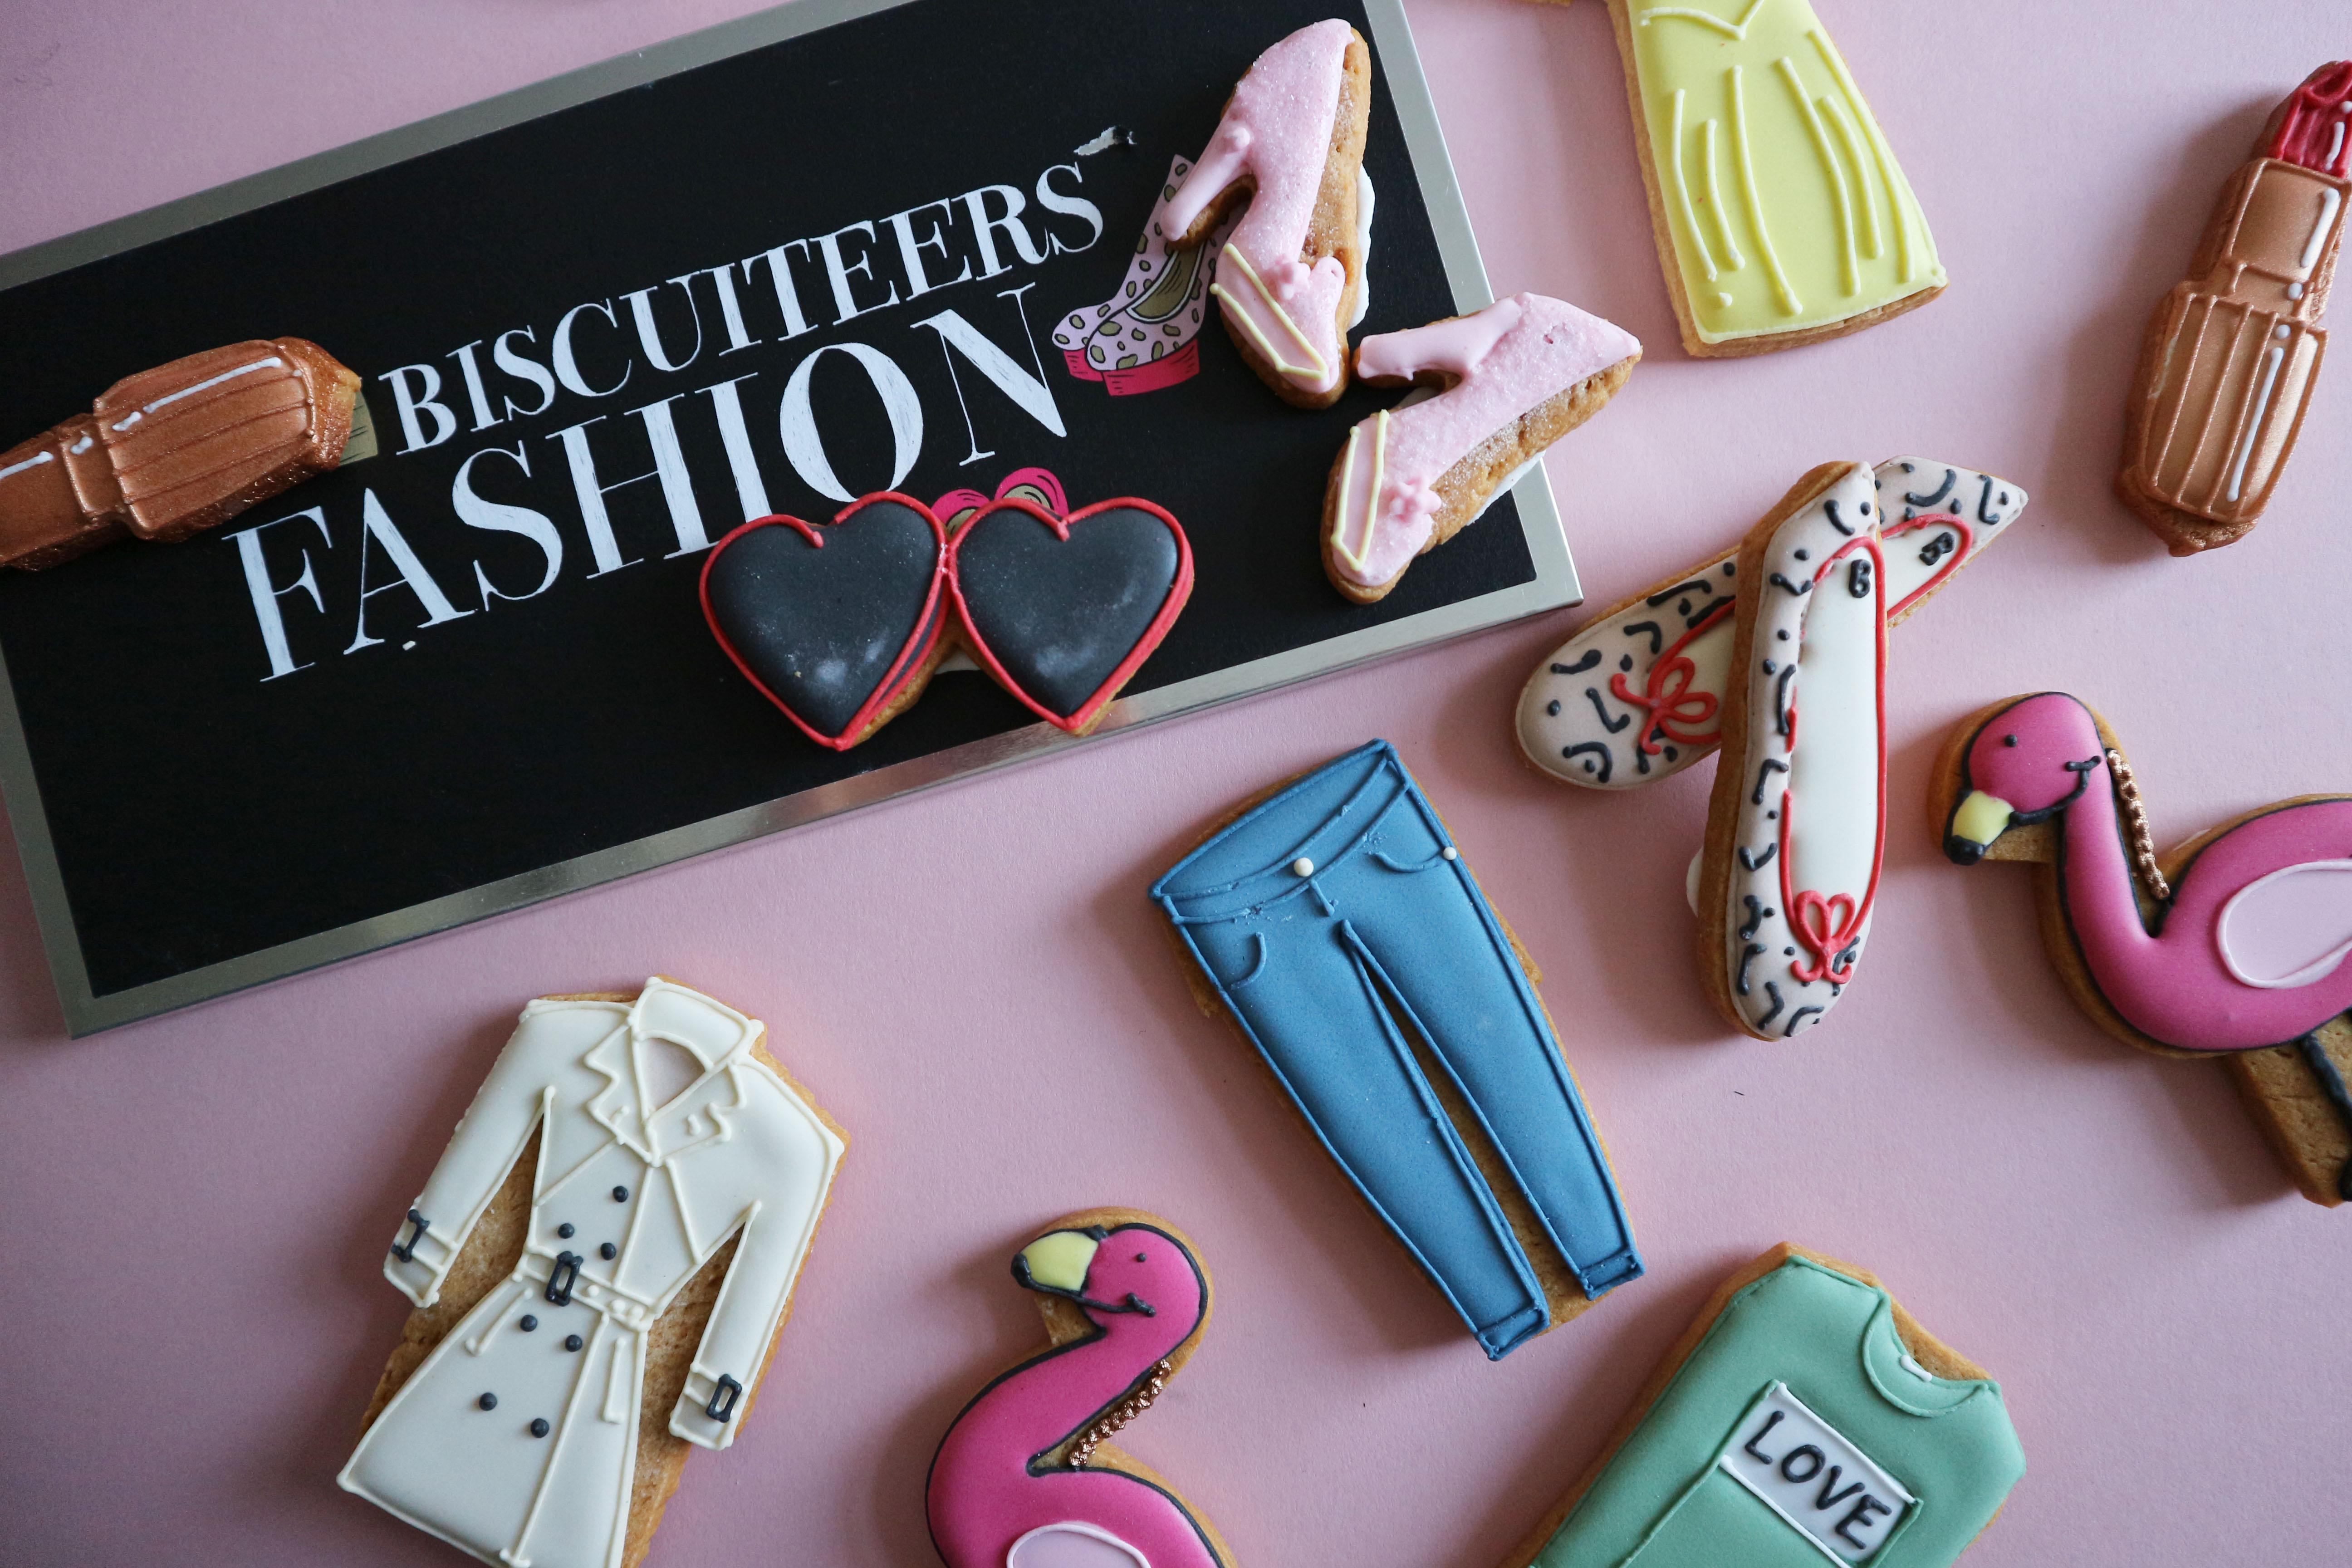 10 years of biscuiteers